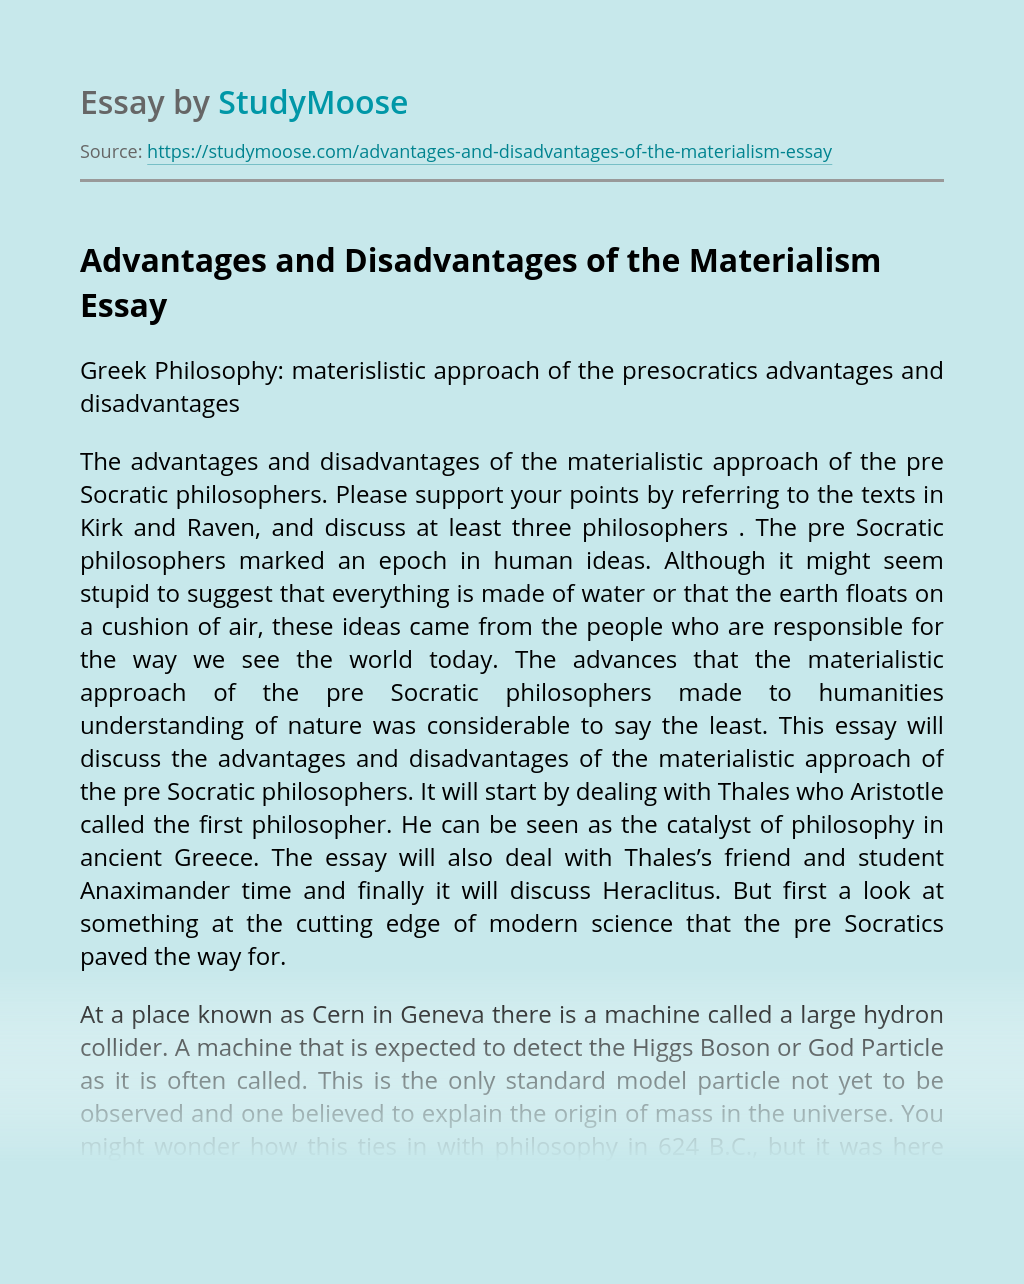 Advantages and Disadvantages of the Materialism